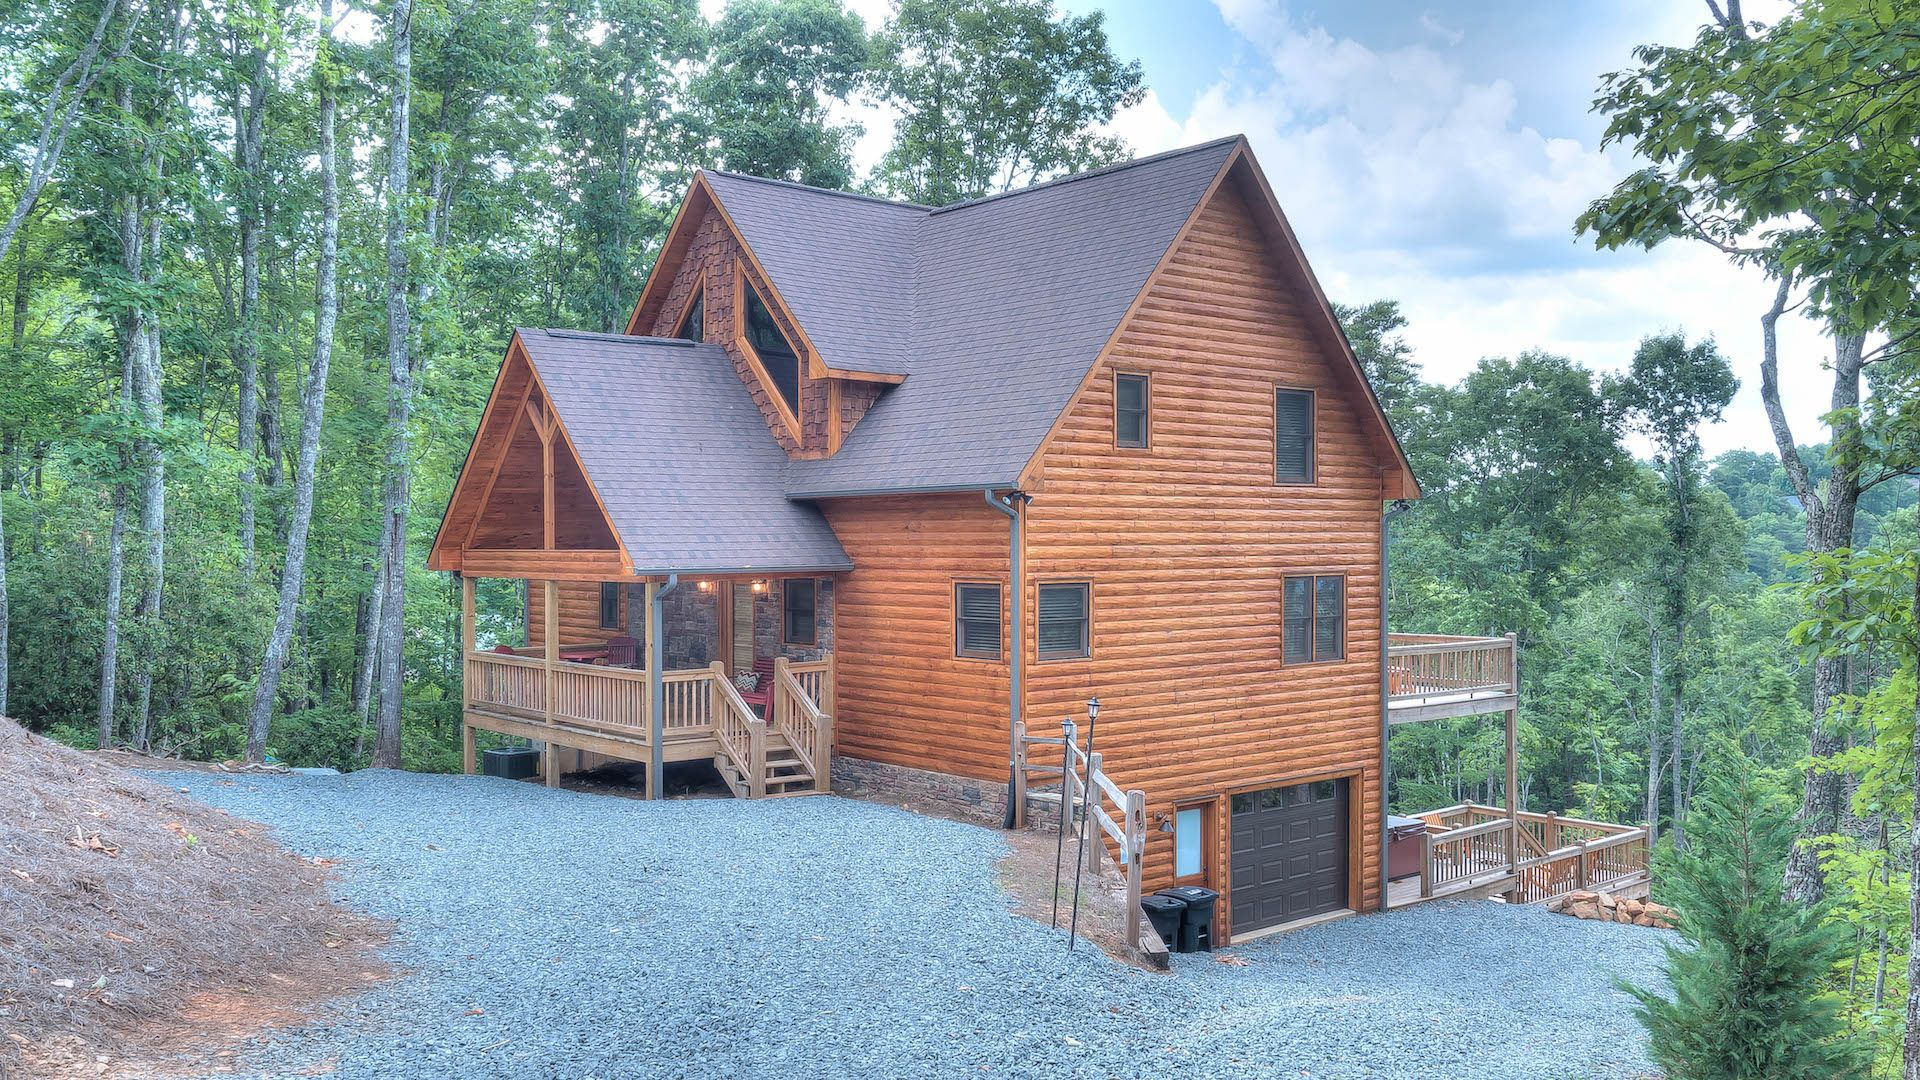 blue ga in georgia cabin rental rentals cabins sundance rent waterfront ridge